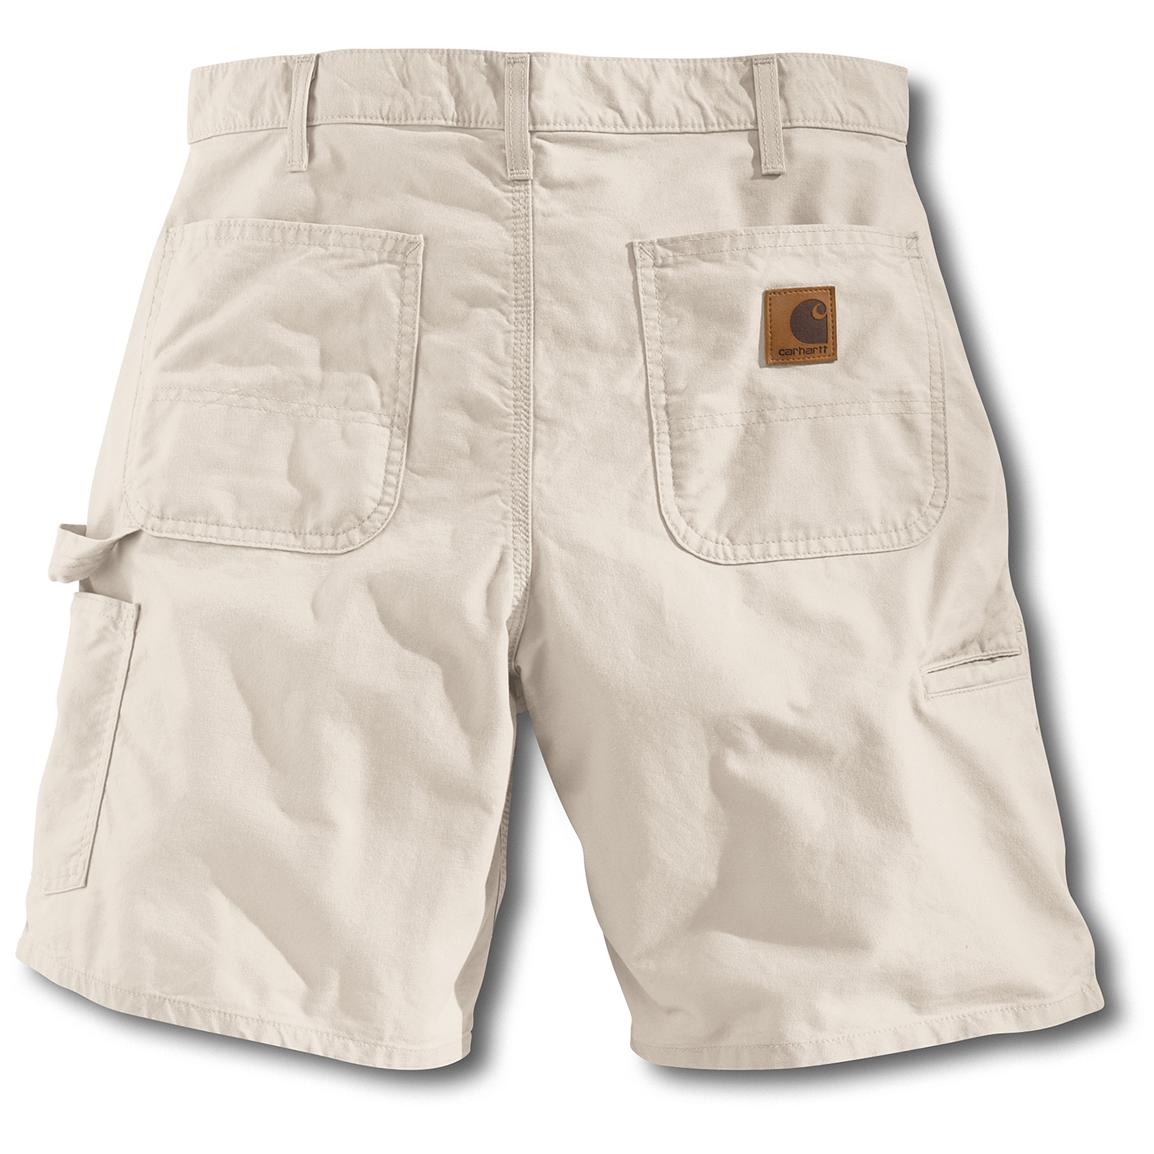 Carhartt Work Shorts, Putty